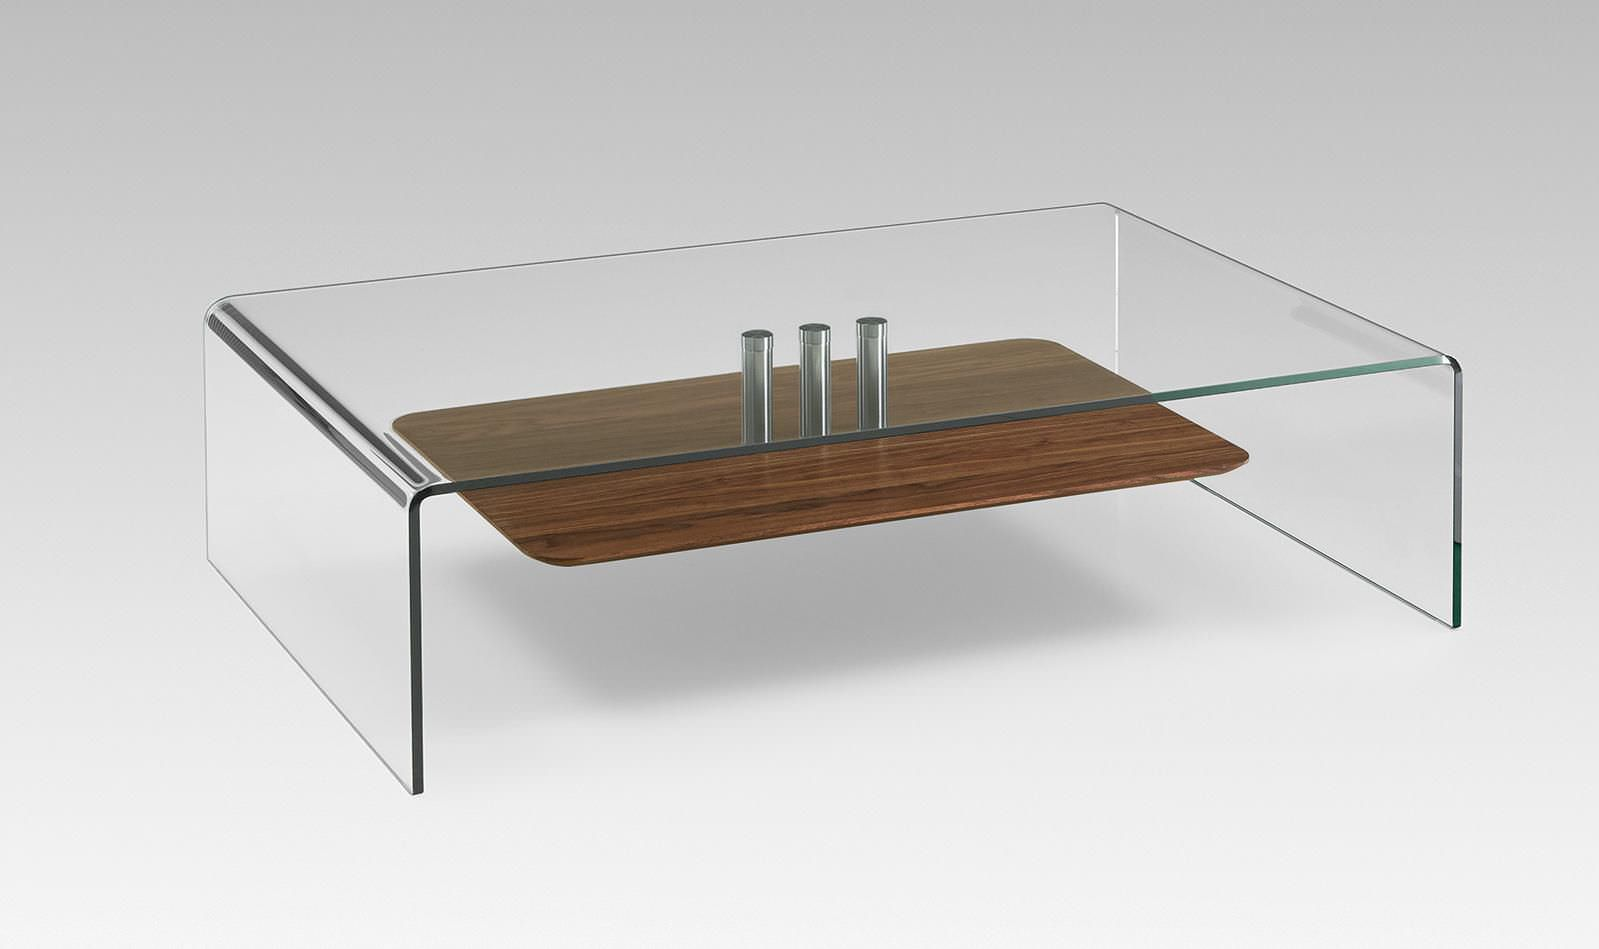 Couchtisch / modern / Glas / Holz - 4618 - Alfons Venjakob GmbH ...